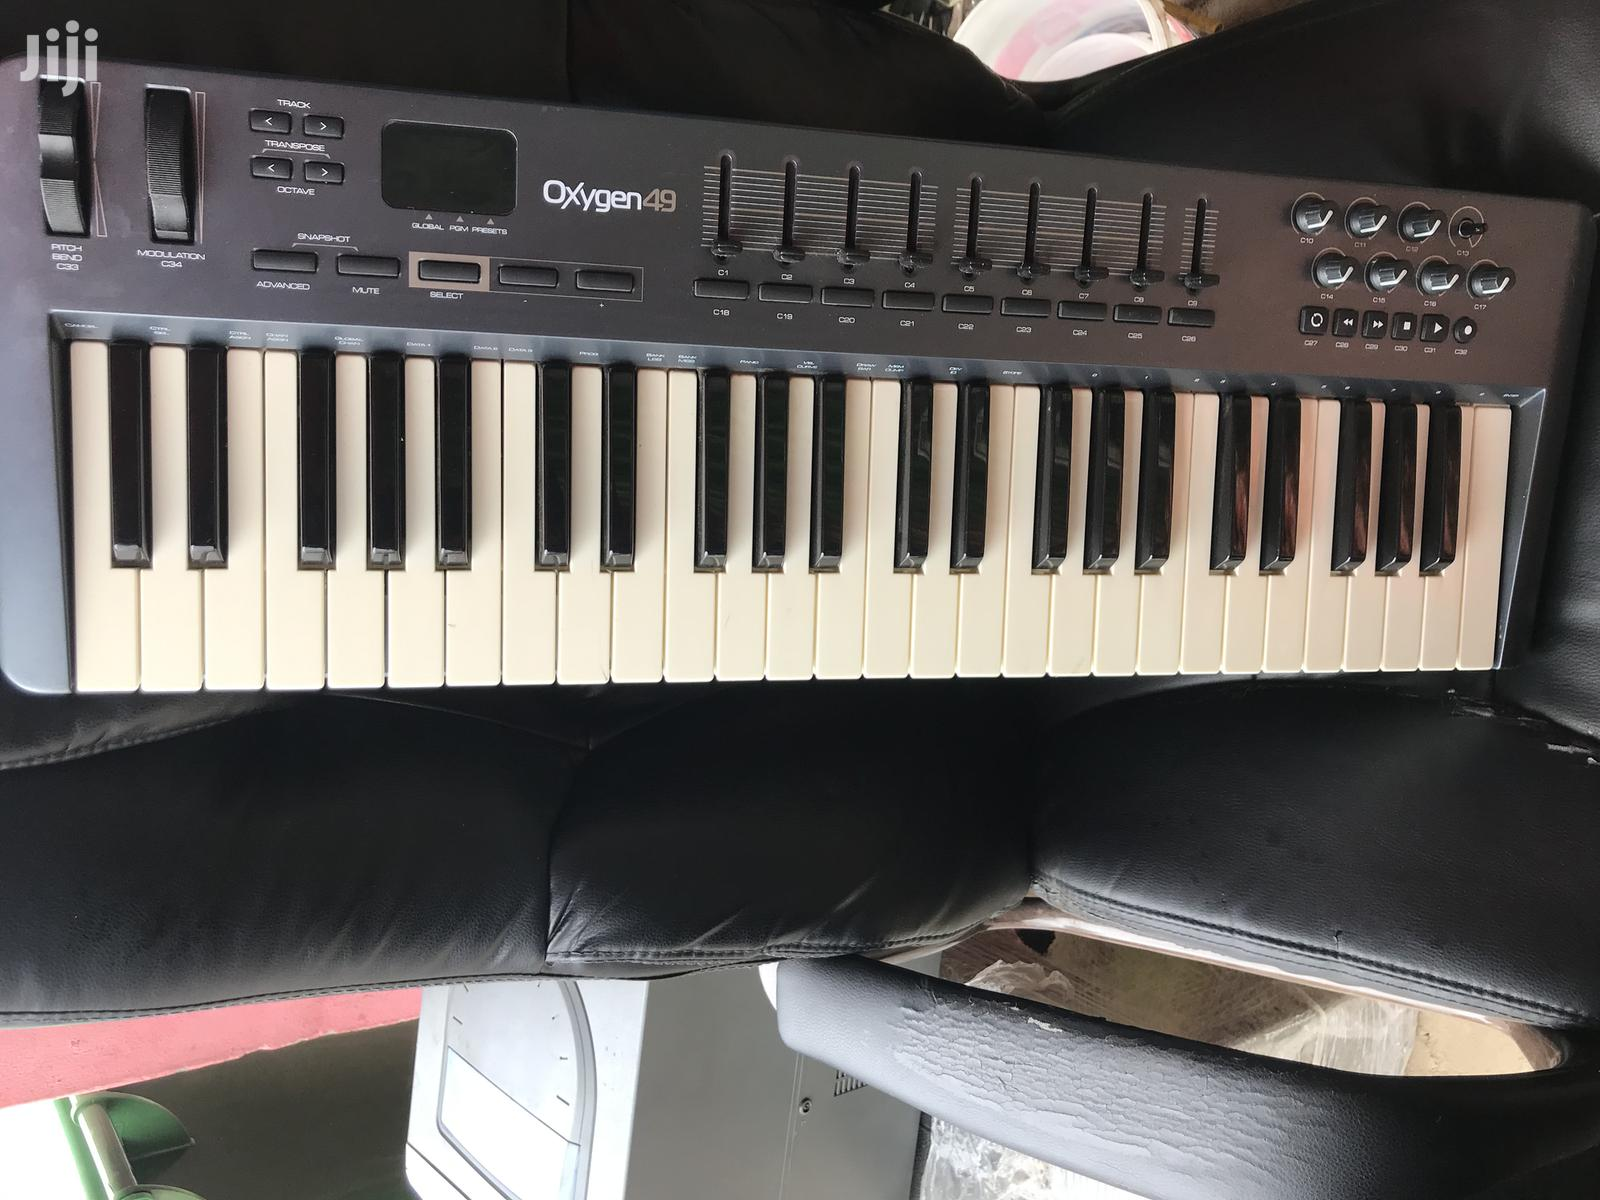 M Audio Oxygen 49 | Musical Instruments & Gear for sale in Accra Metropolitan, Greater Accra, Ghana